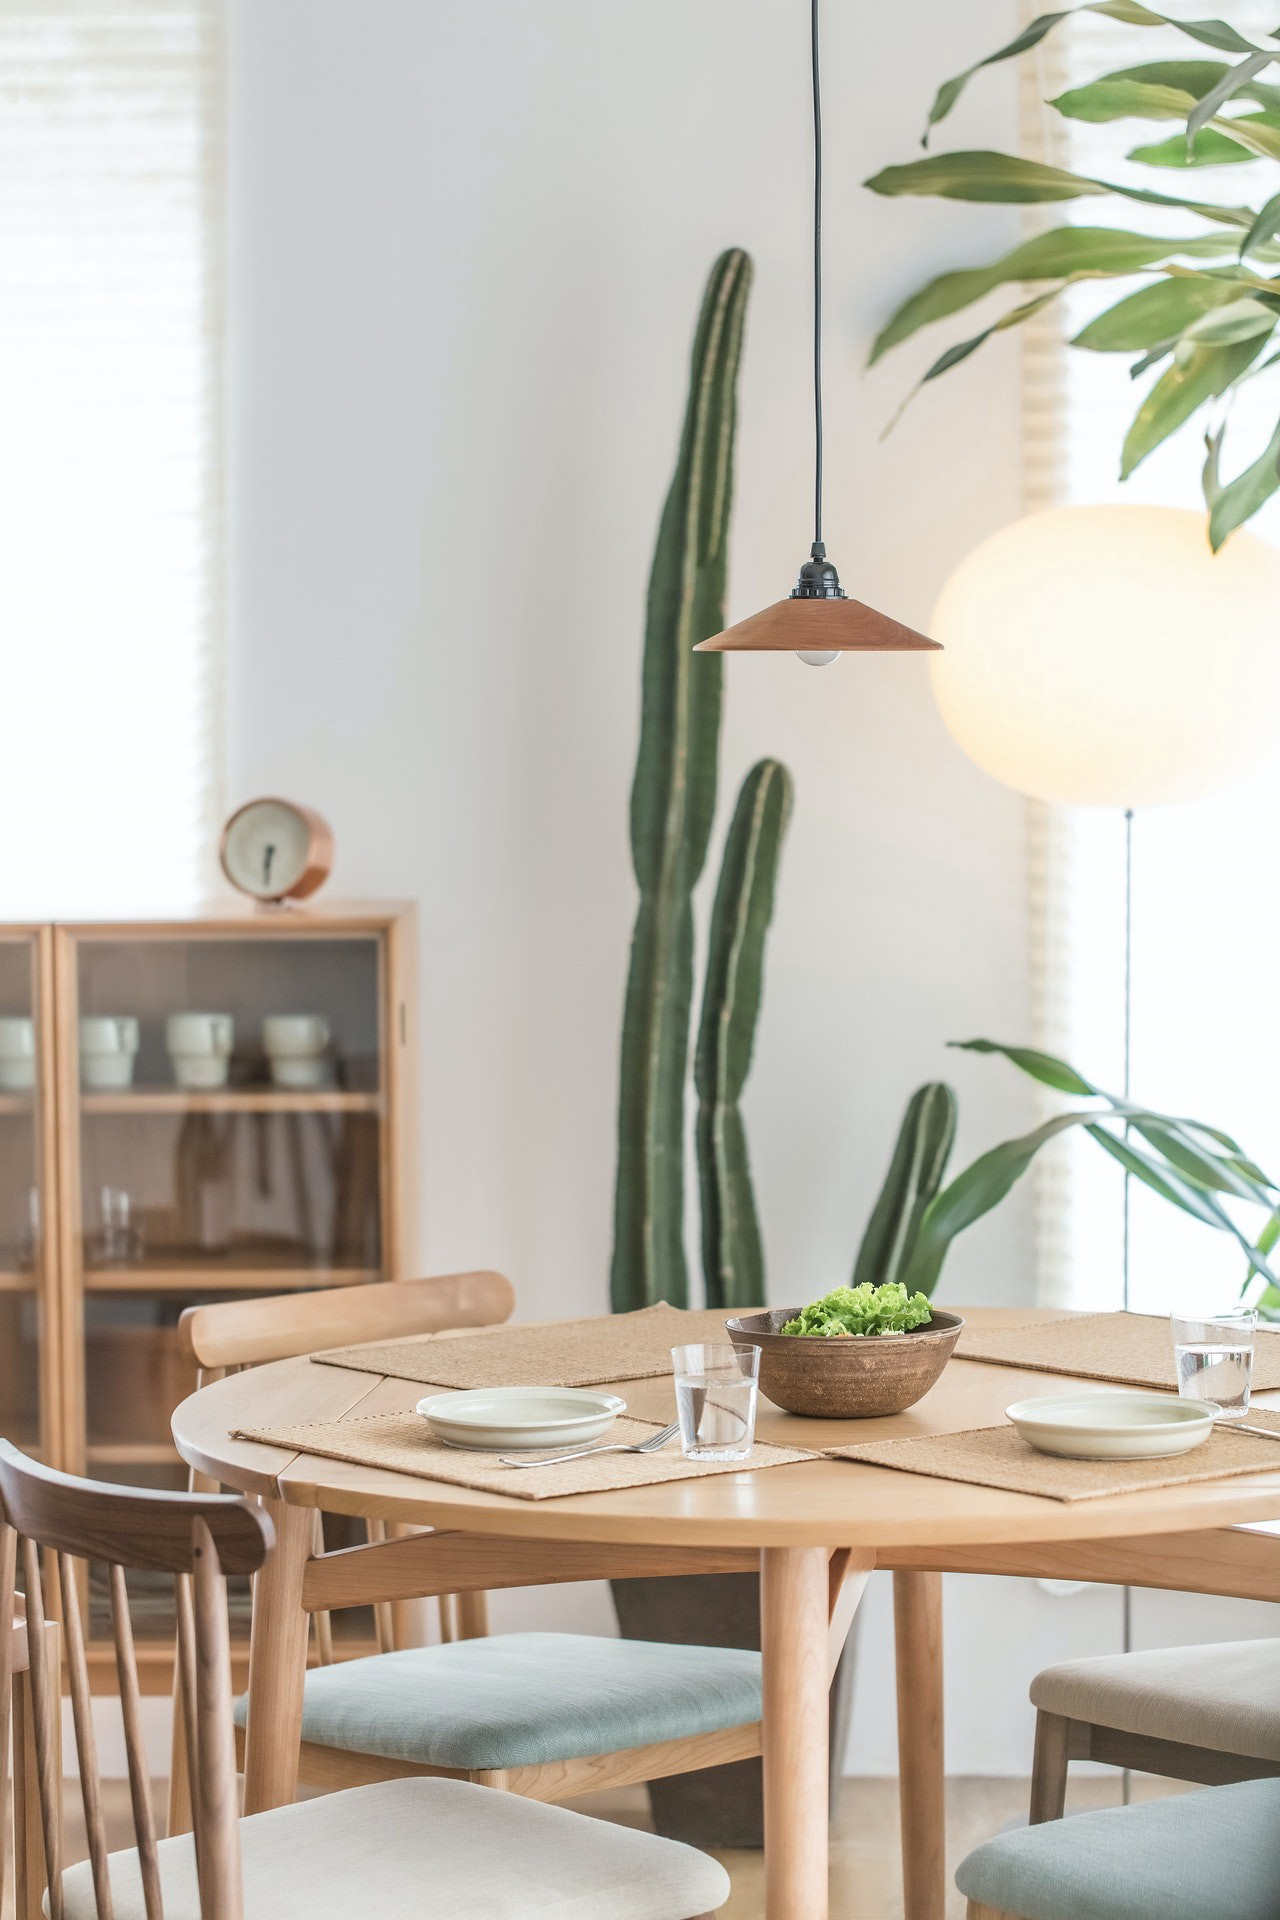 Wooden table and chairs with cactus in background